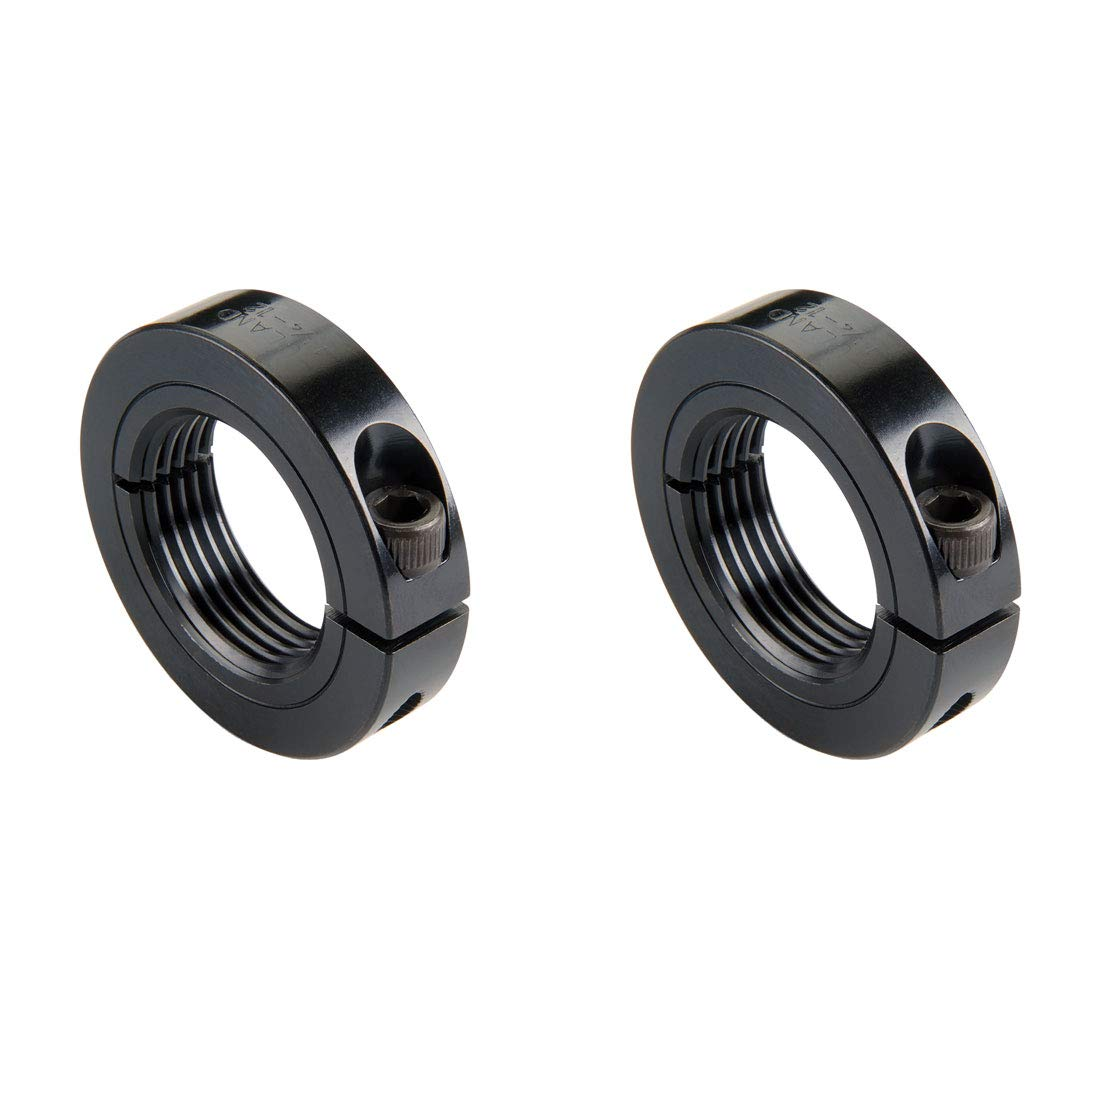 Pack of 2 Black Oxide Steel.875-14 Bore Ruland TCL-14-14-F One-Piece Clamping Shaft Collar 1//2 Width 1 5//8 OD Threaded